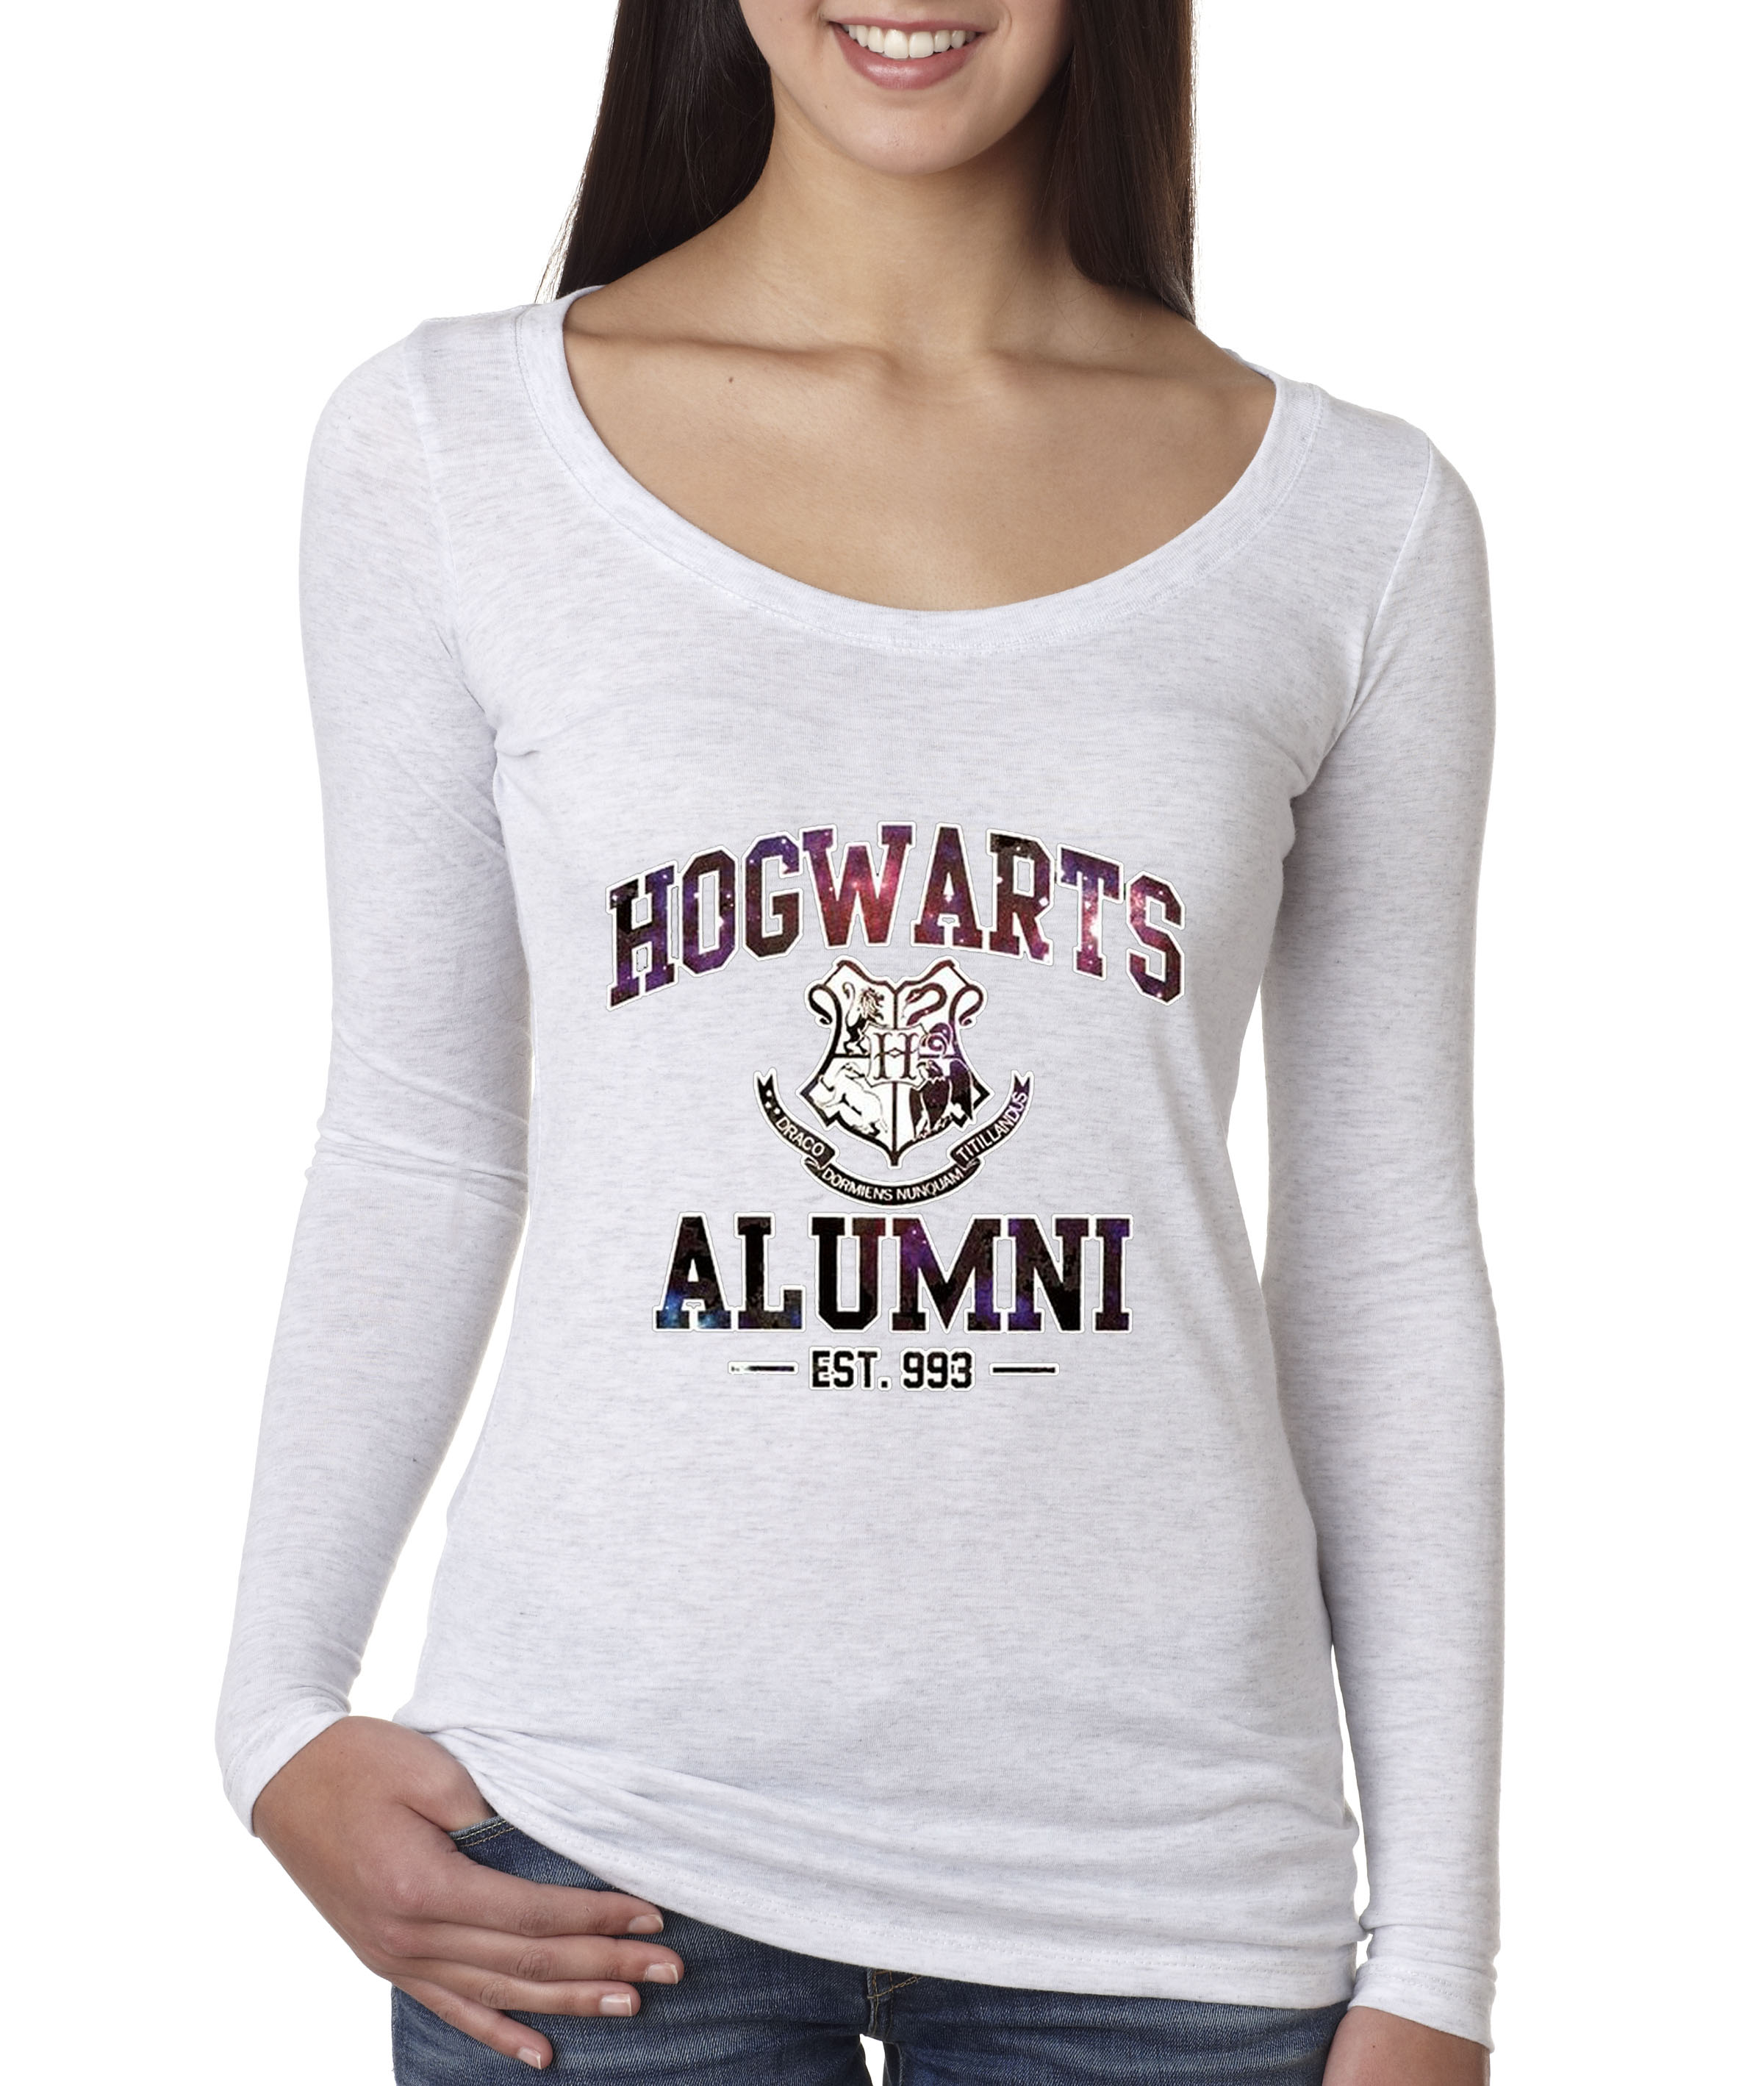 9193a7d8 New Way 214 - Women's Long Sleeve T-Shirt Hogwarts Alumni Galaxy Harry  Potter